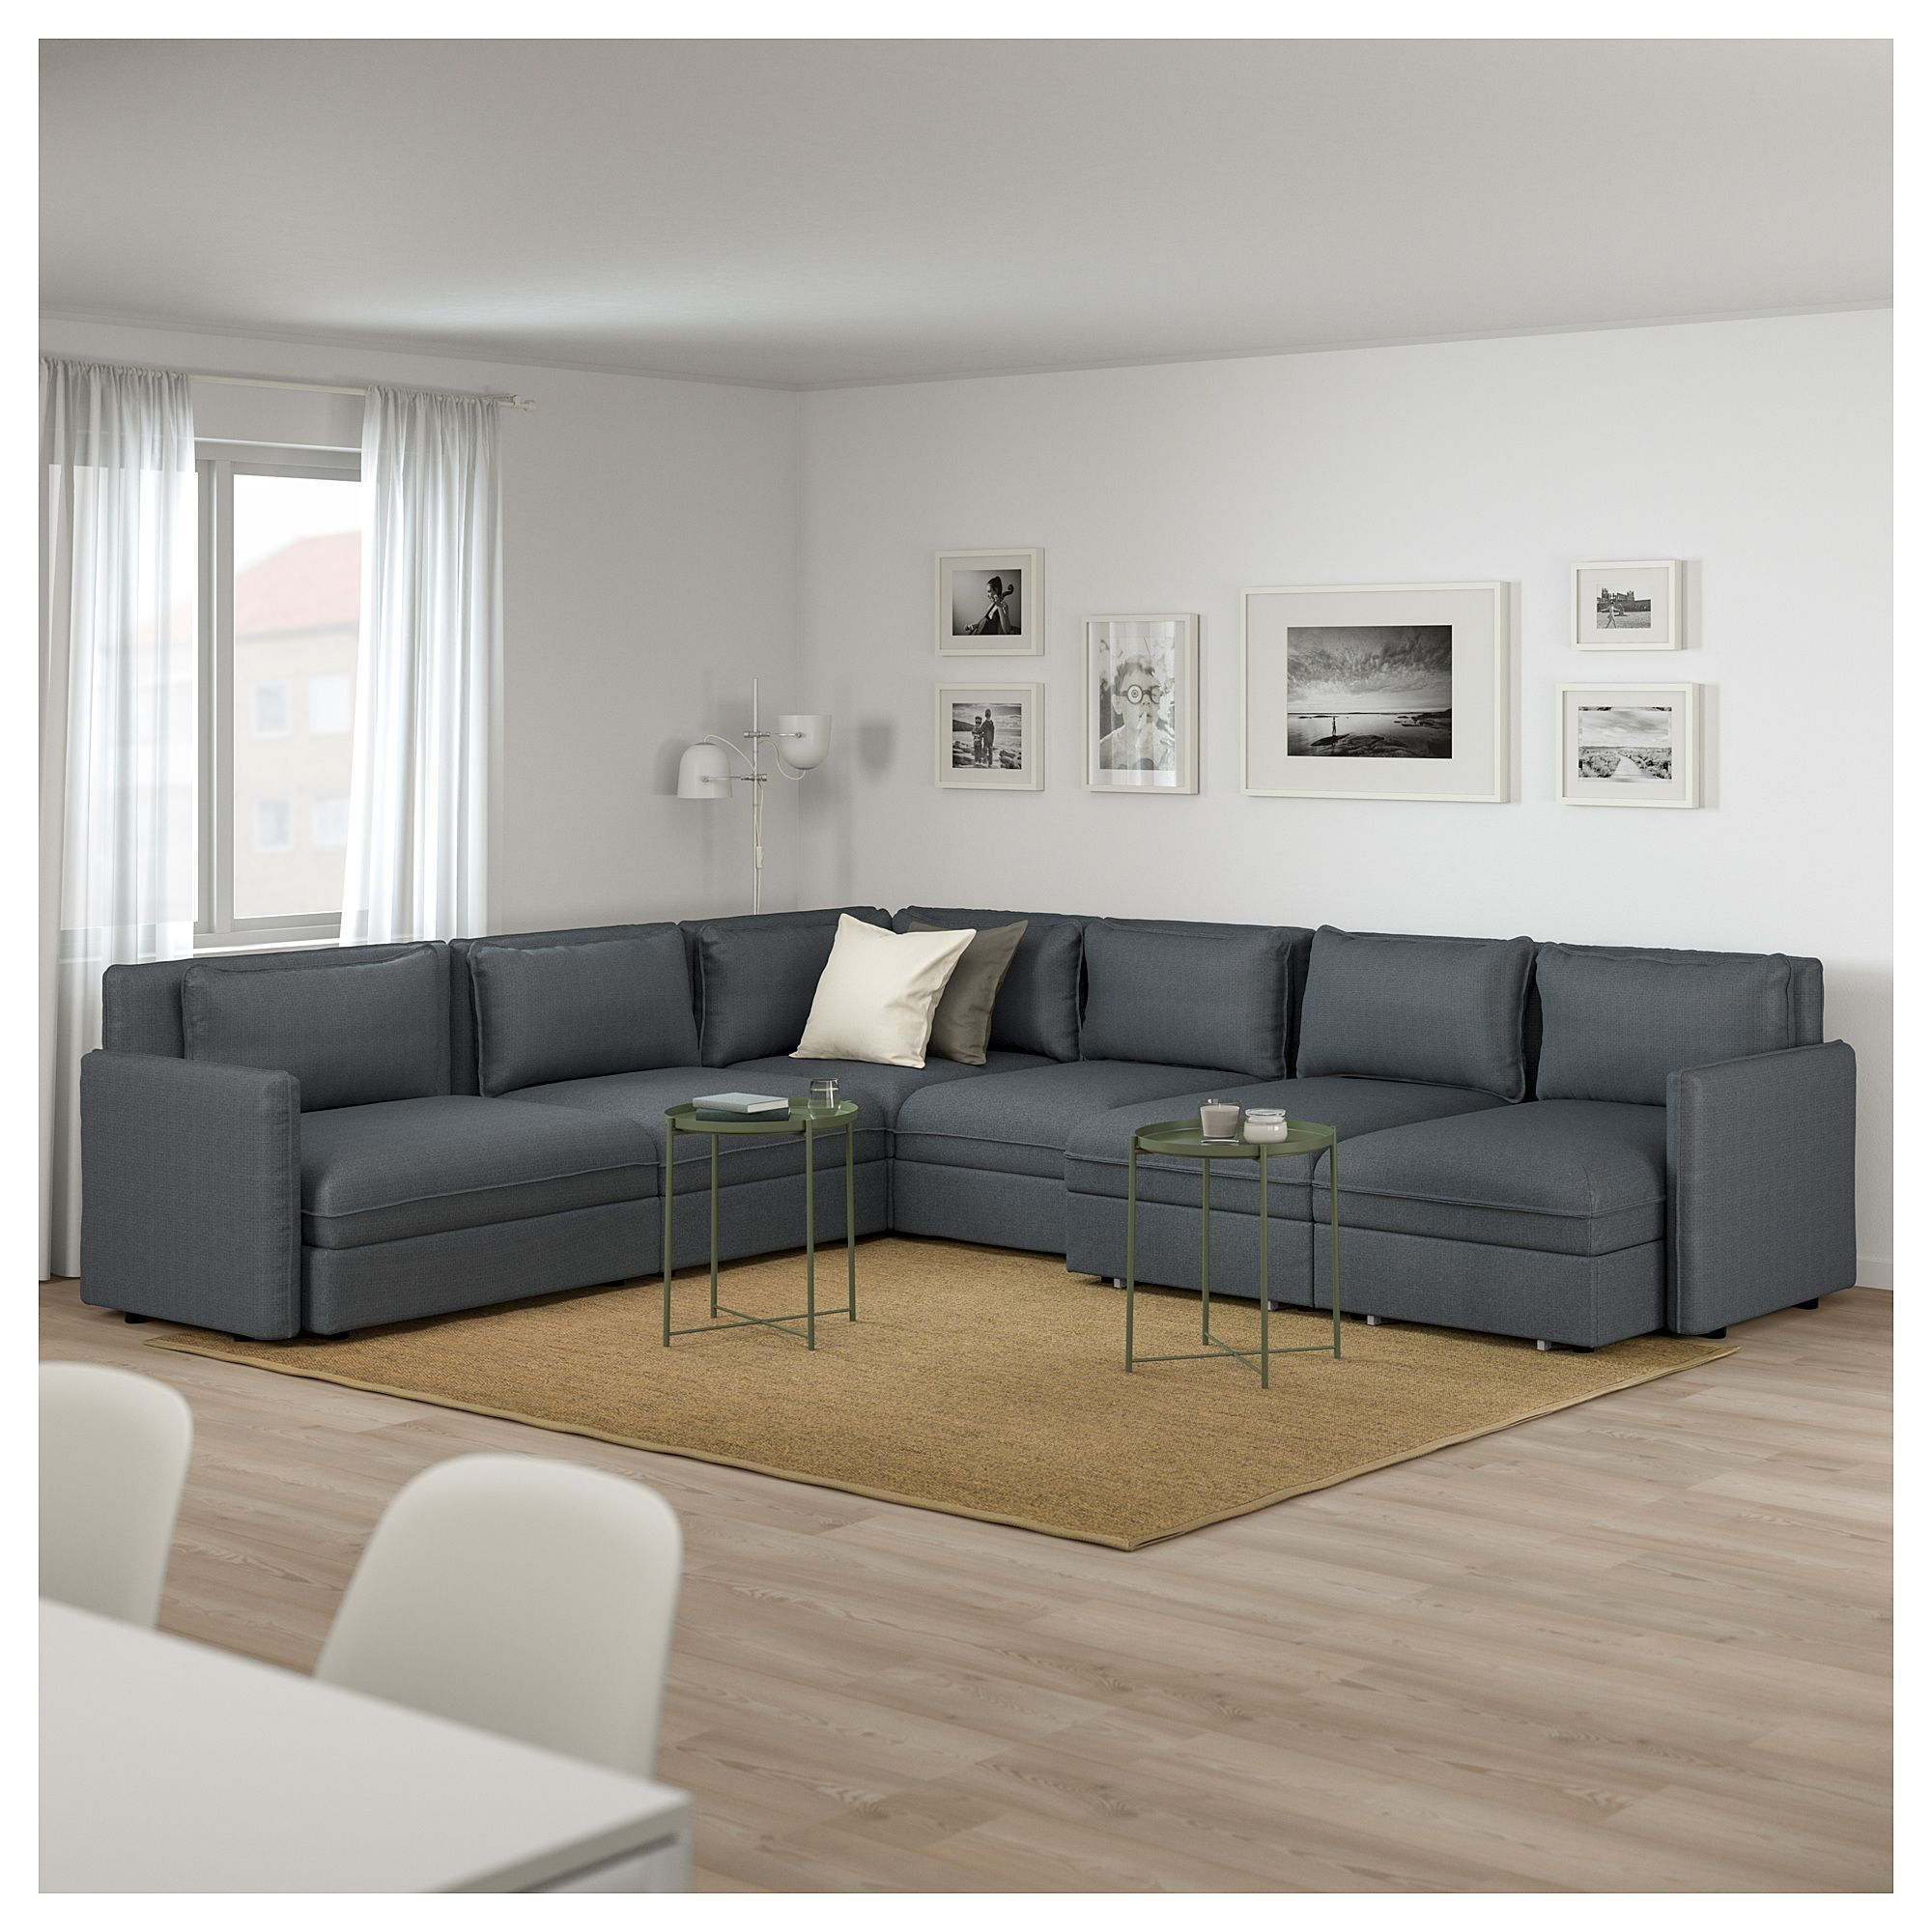 Vimle Sofa Ikea Dubai Furniture And Home Furnishings Home Decor Modular Corner Sofa